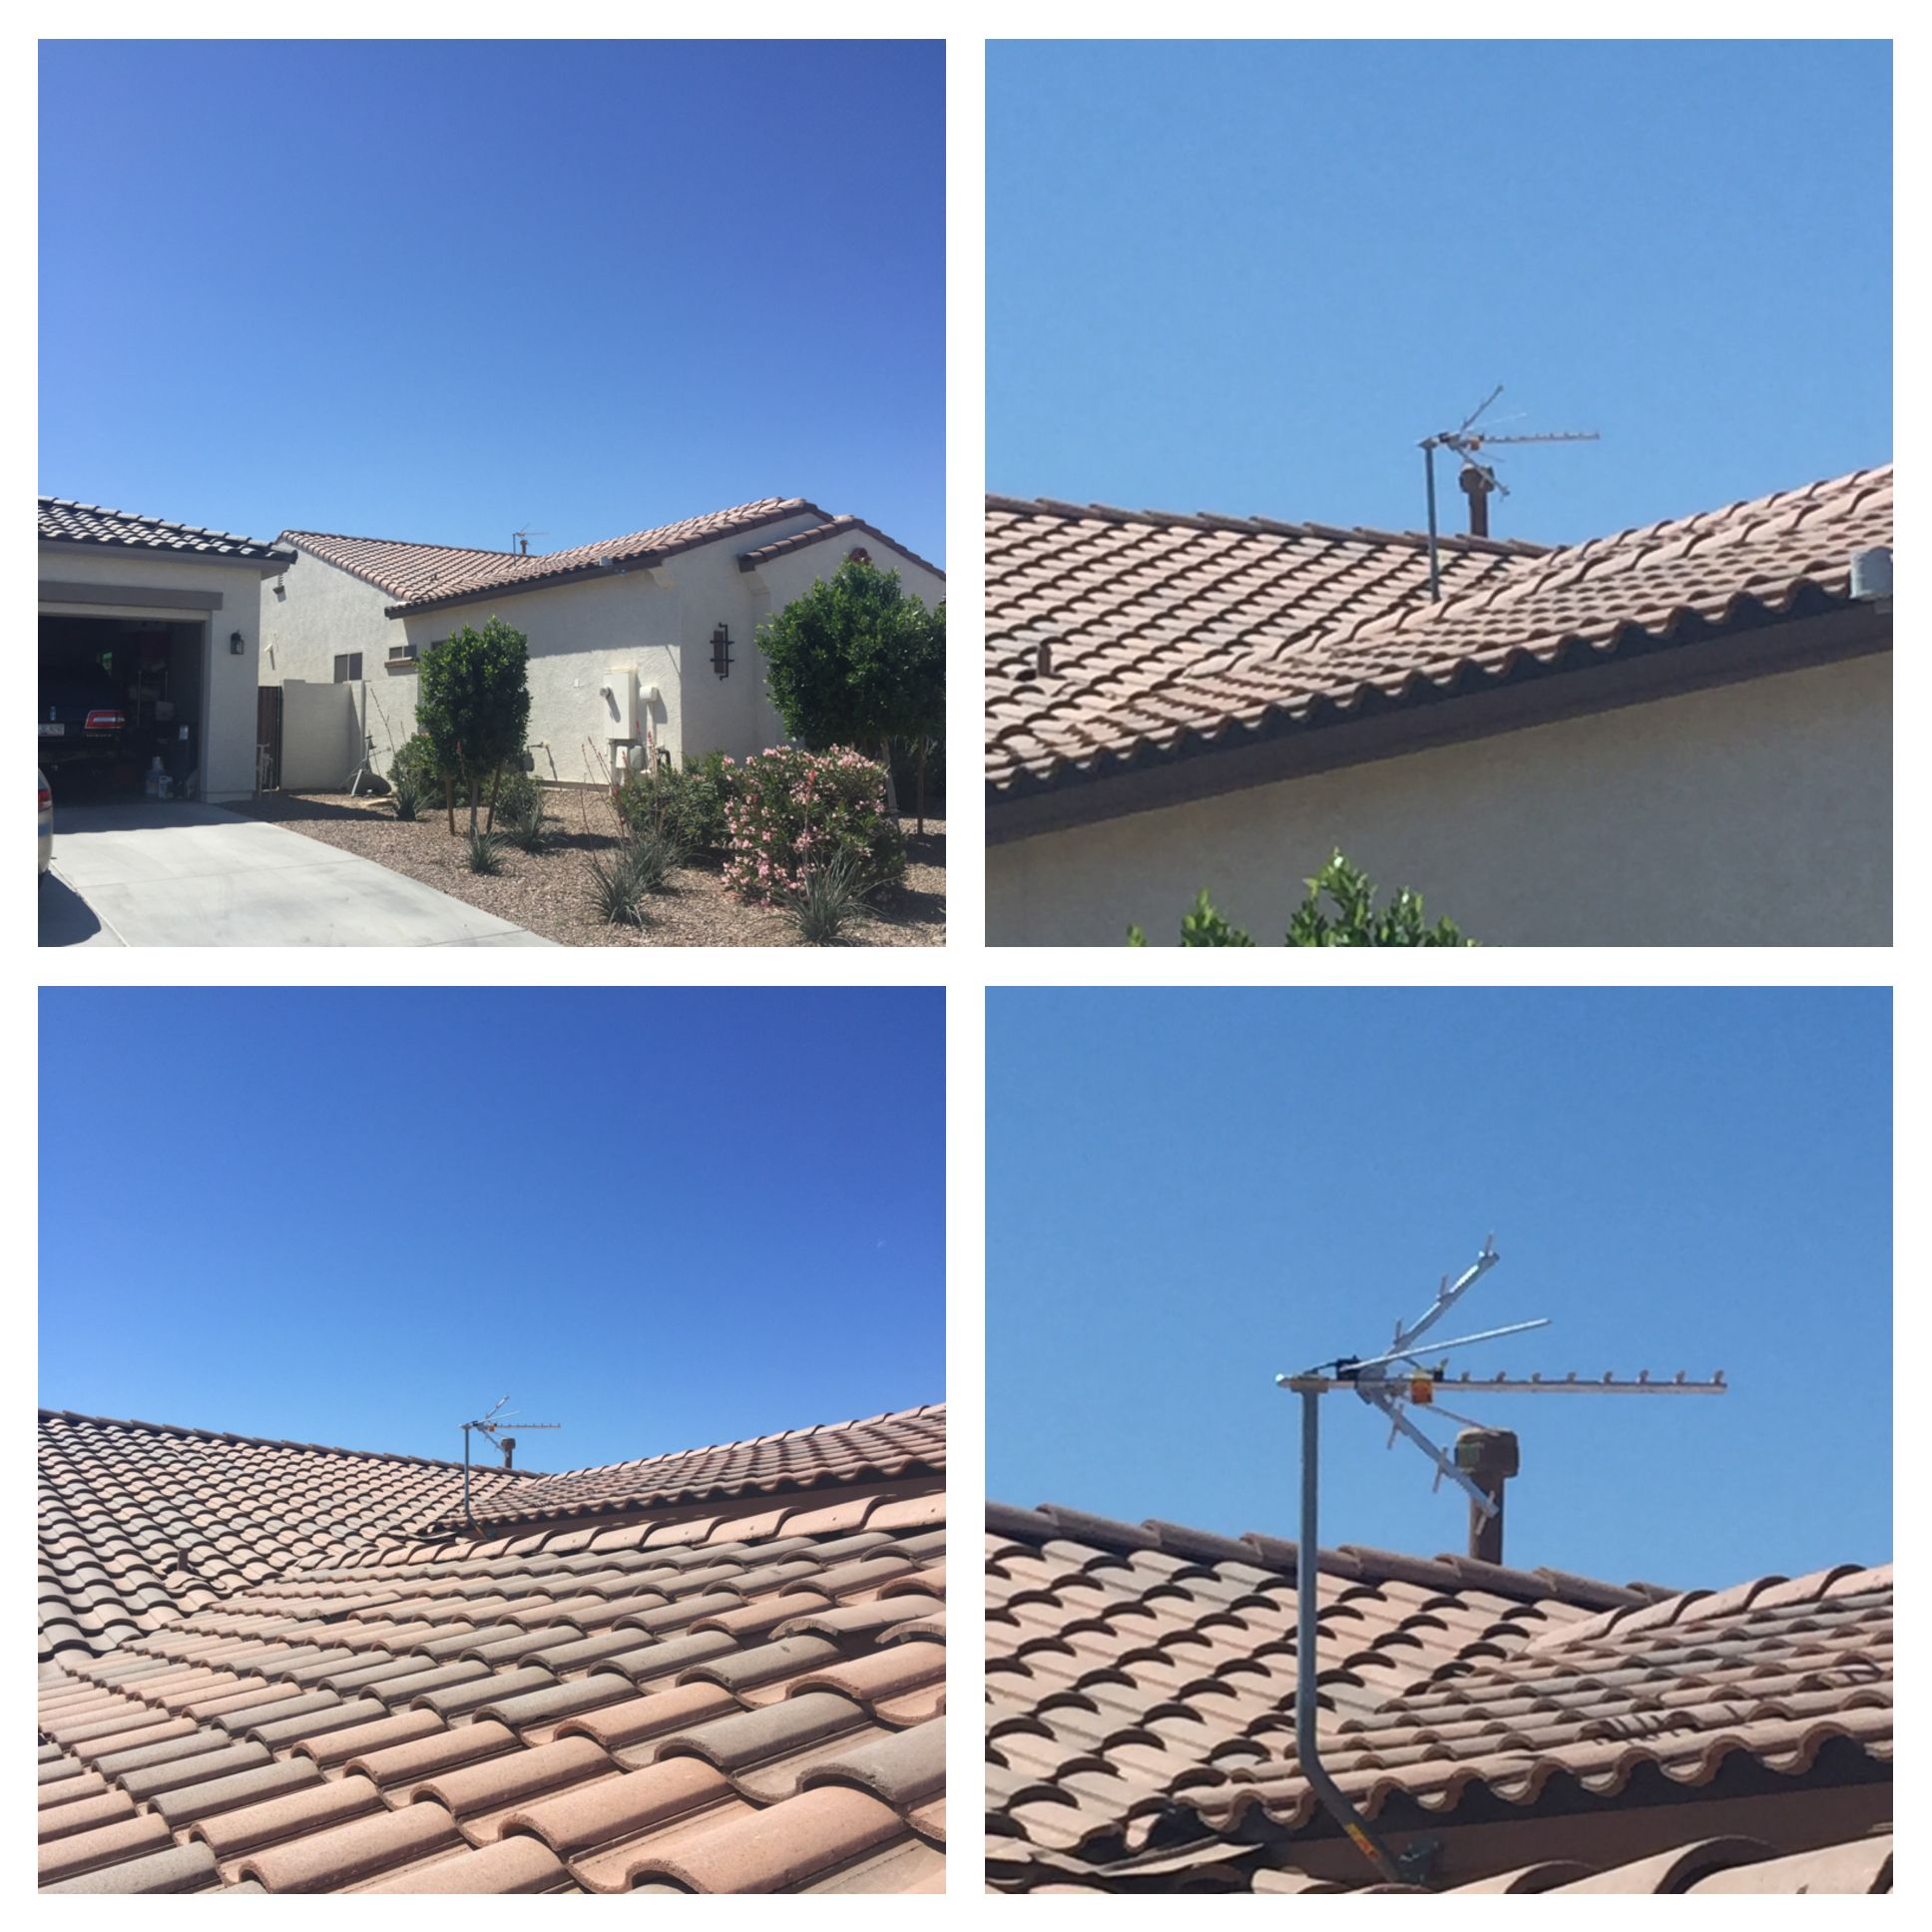 Astounding Outdoor Hdtv Antenna Installation Today In Queen Creek Arizona By Wiring Digital Resources Antuskbiperorg